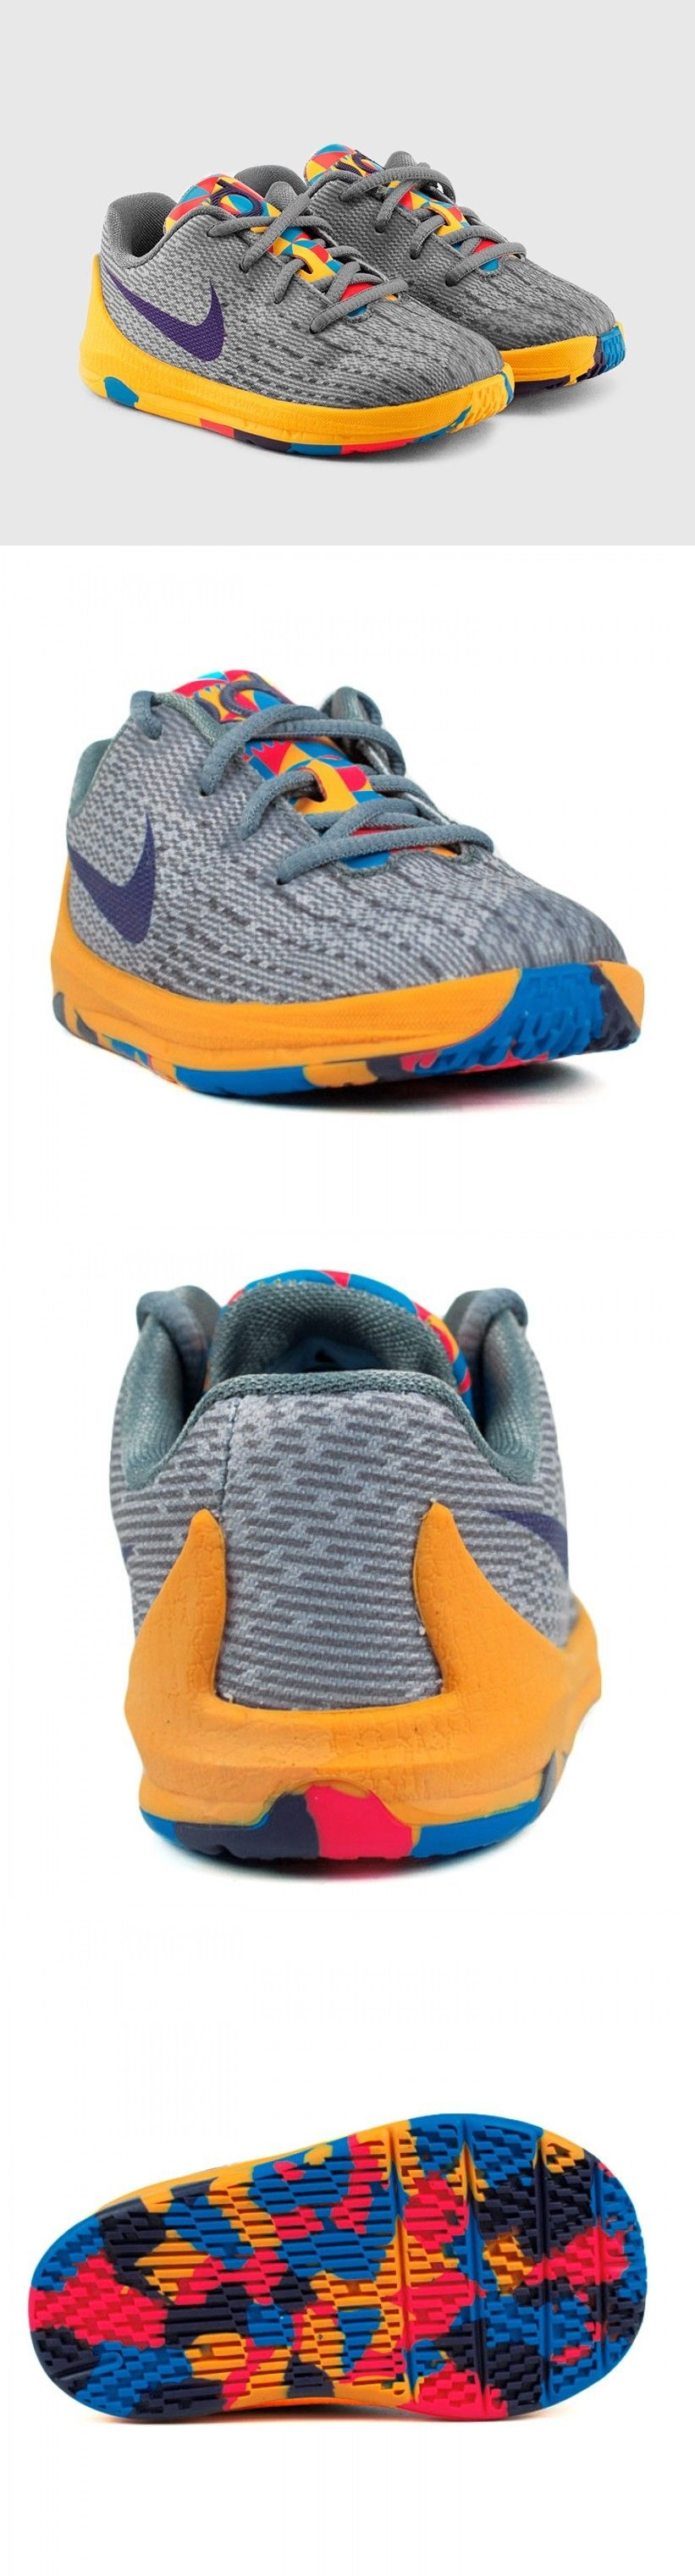 Baby Shoes Toddler Kids Nike Air Kd Viii Sneakers New Grey